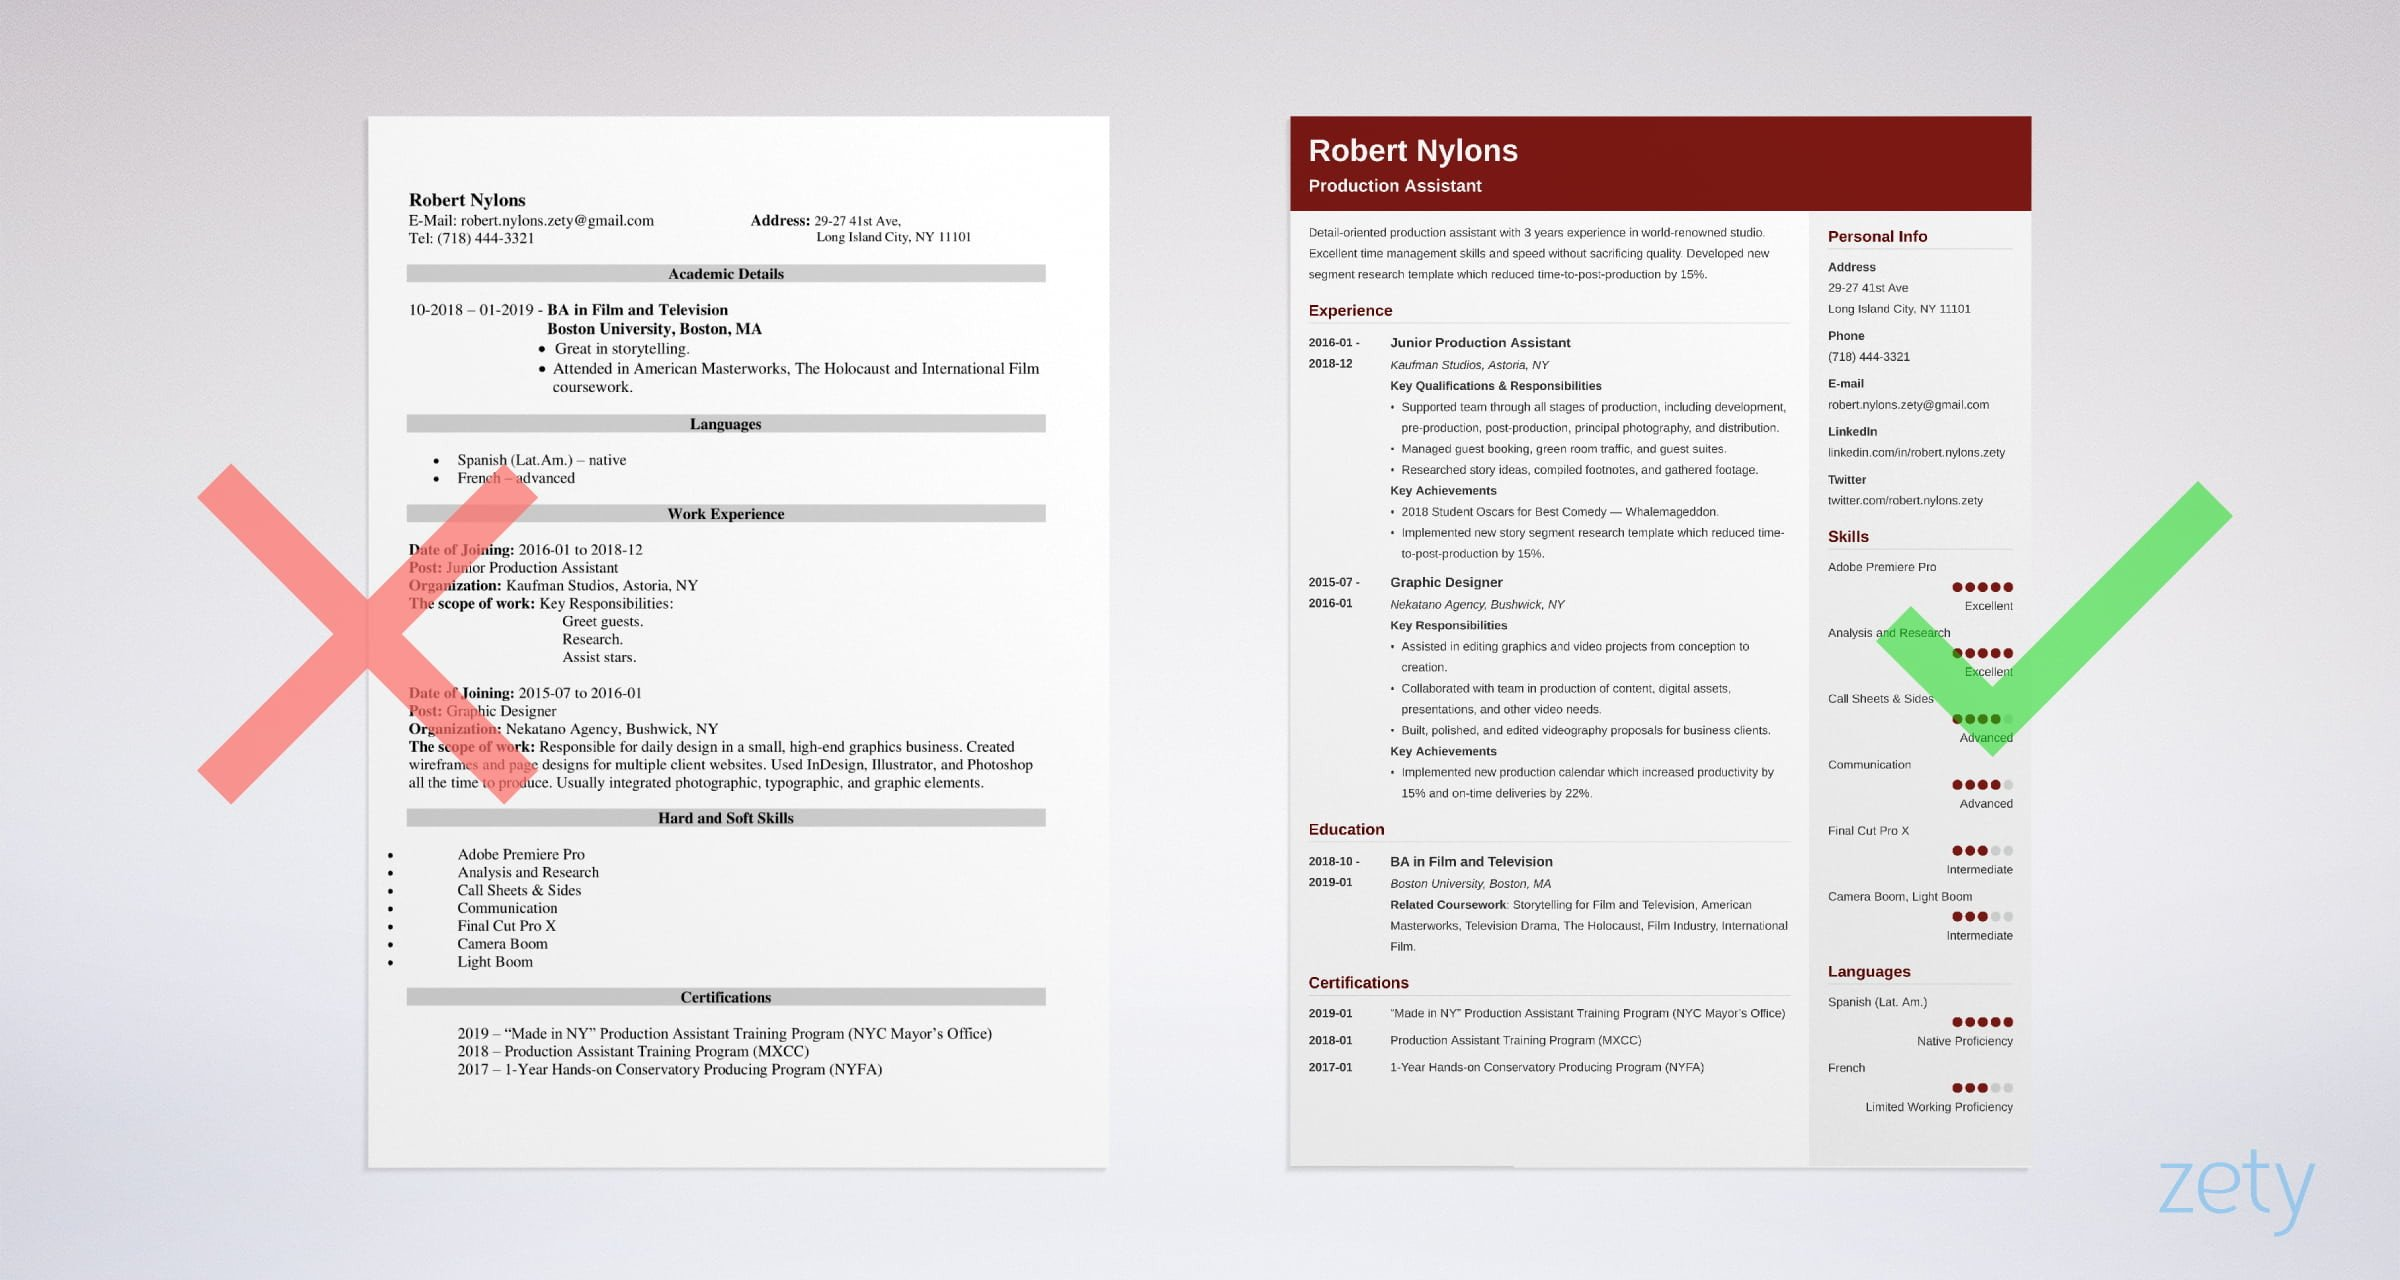 production assistant resume examples skills for film or tv example acting format psg Resume Production Assistant Resume